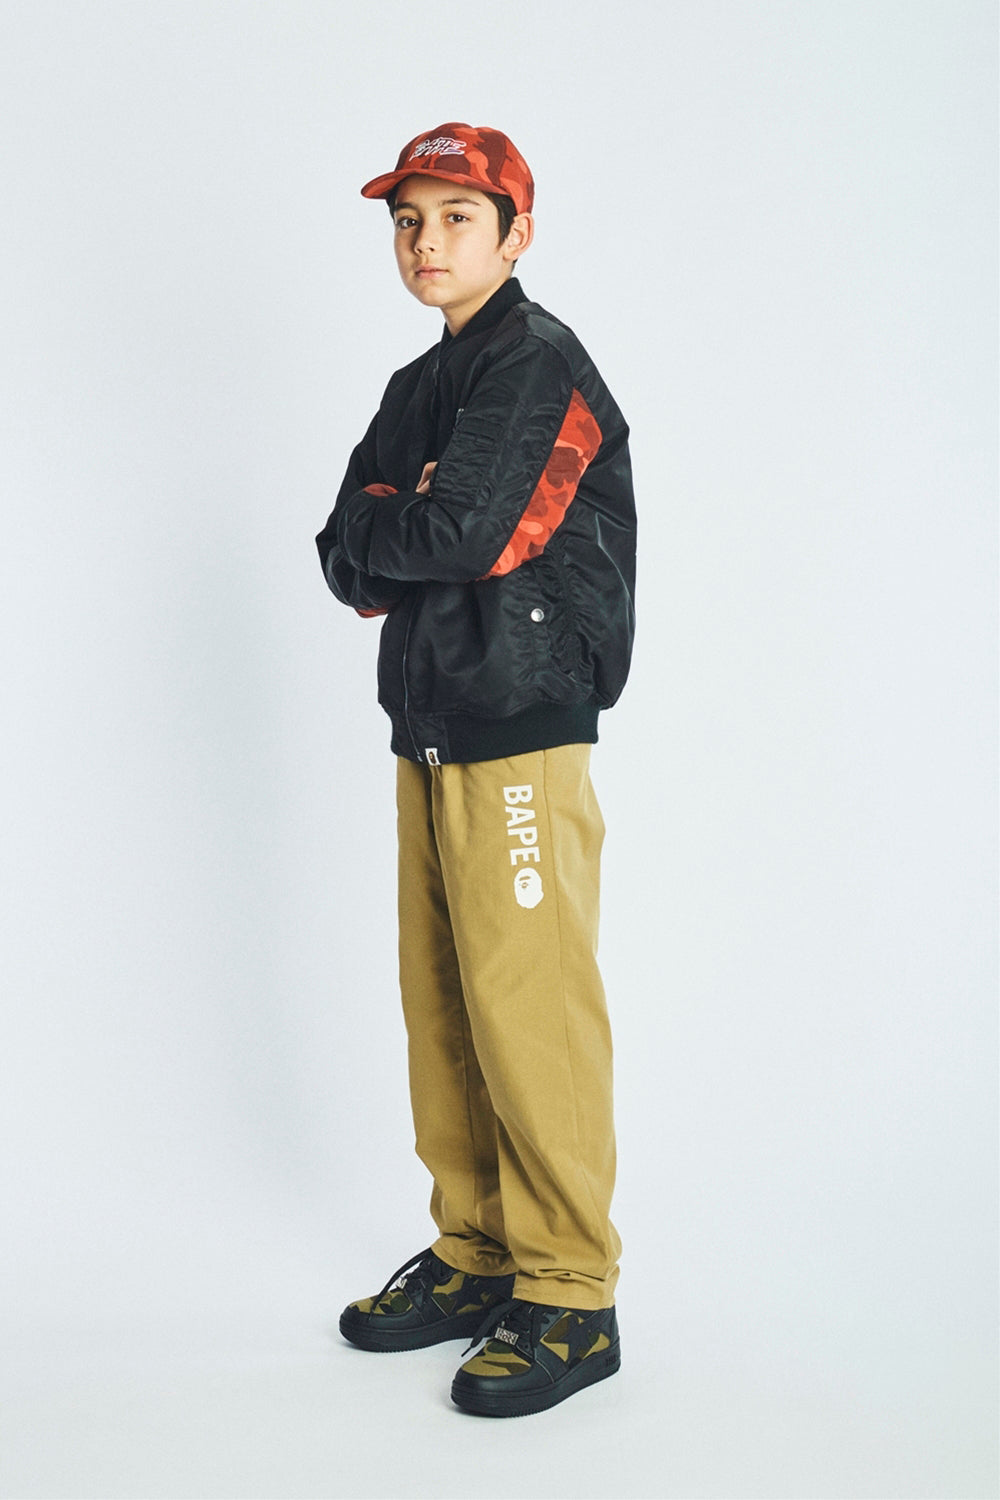 A BATHING APE 2019 AW KIDS' LOOKBOOK 24